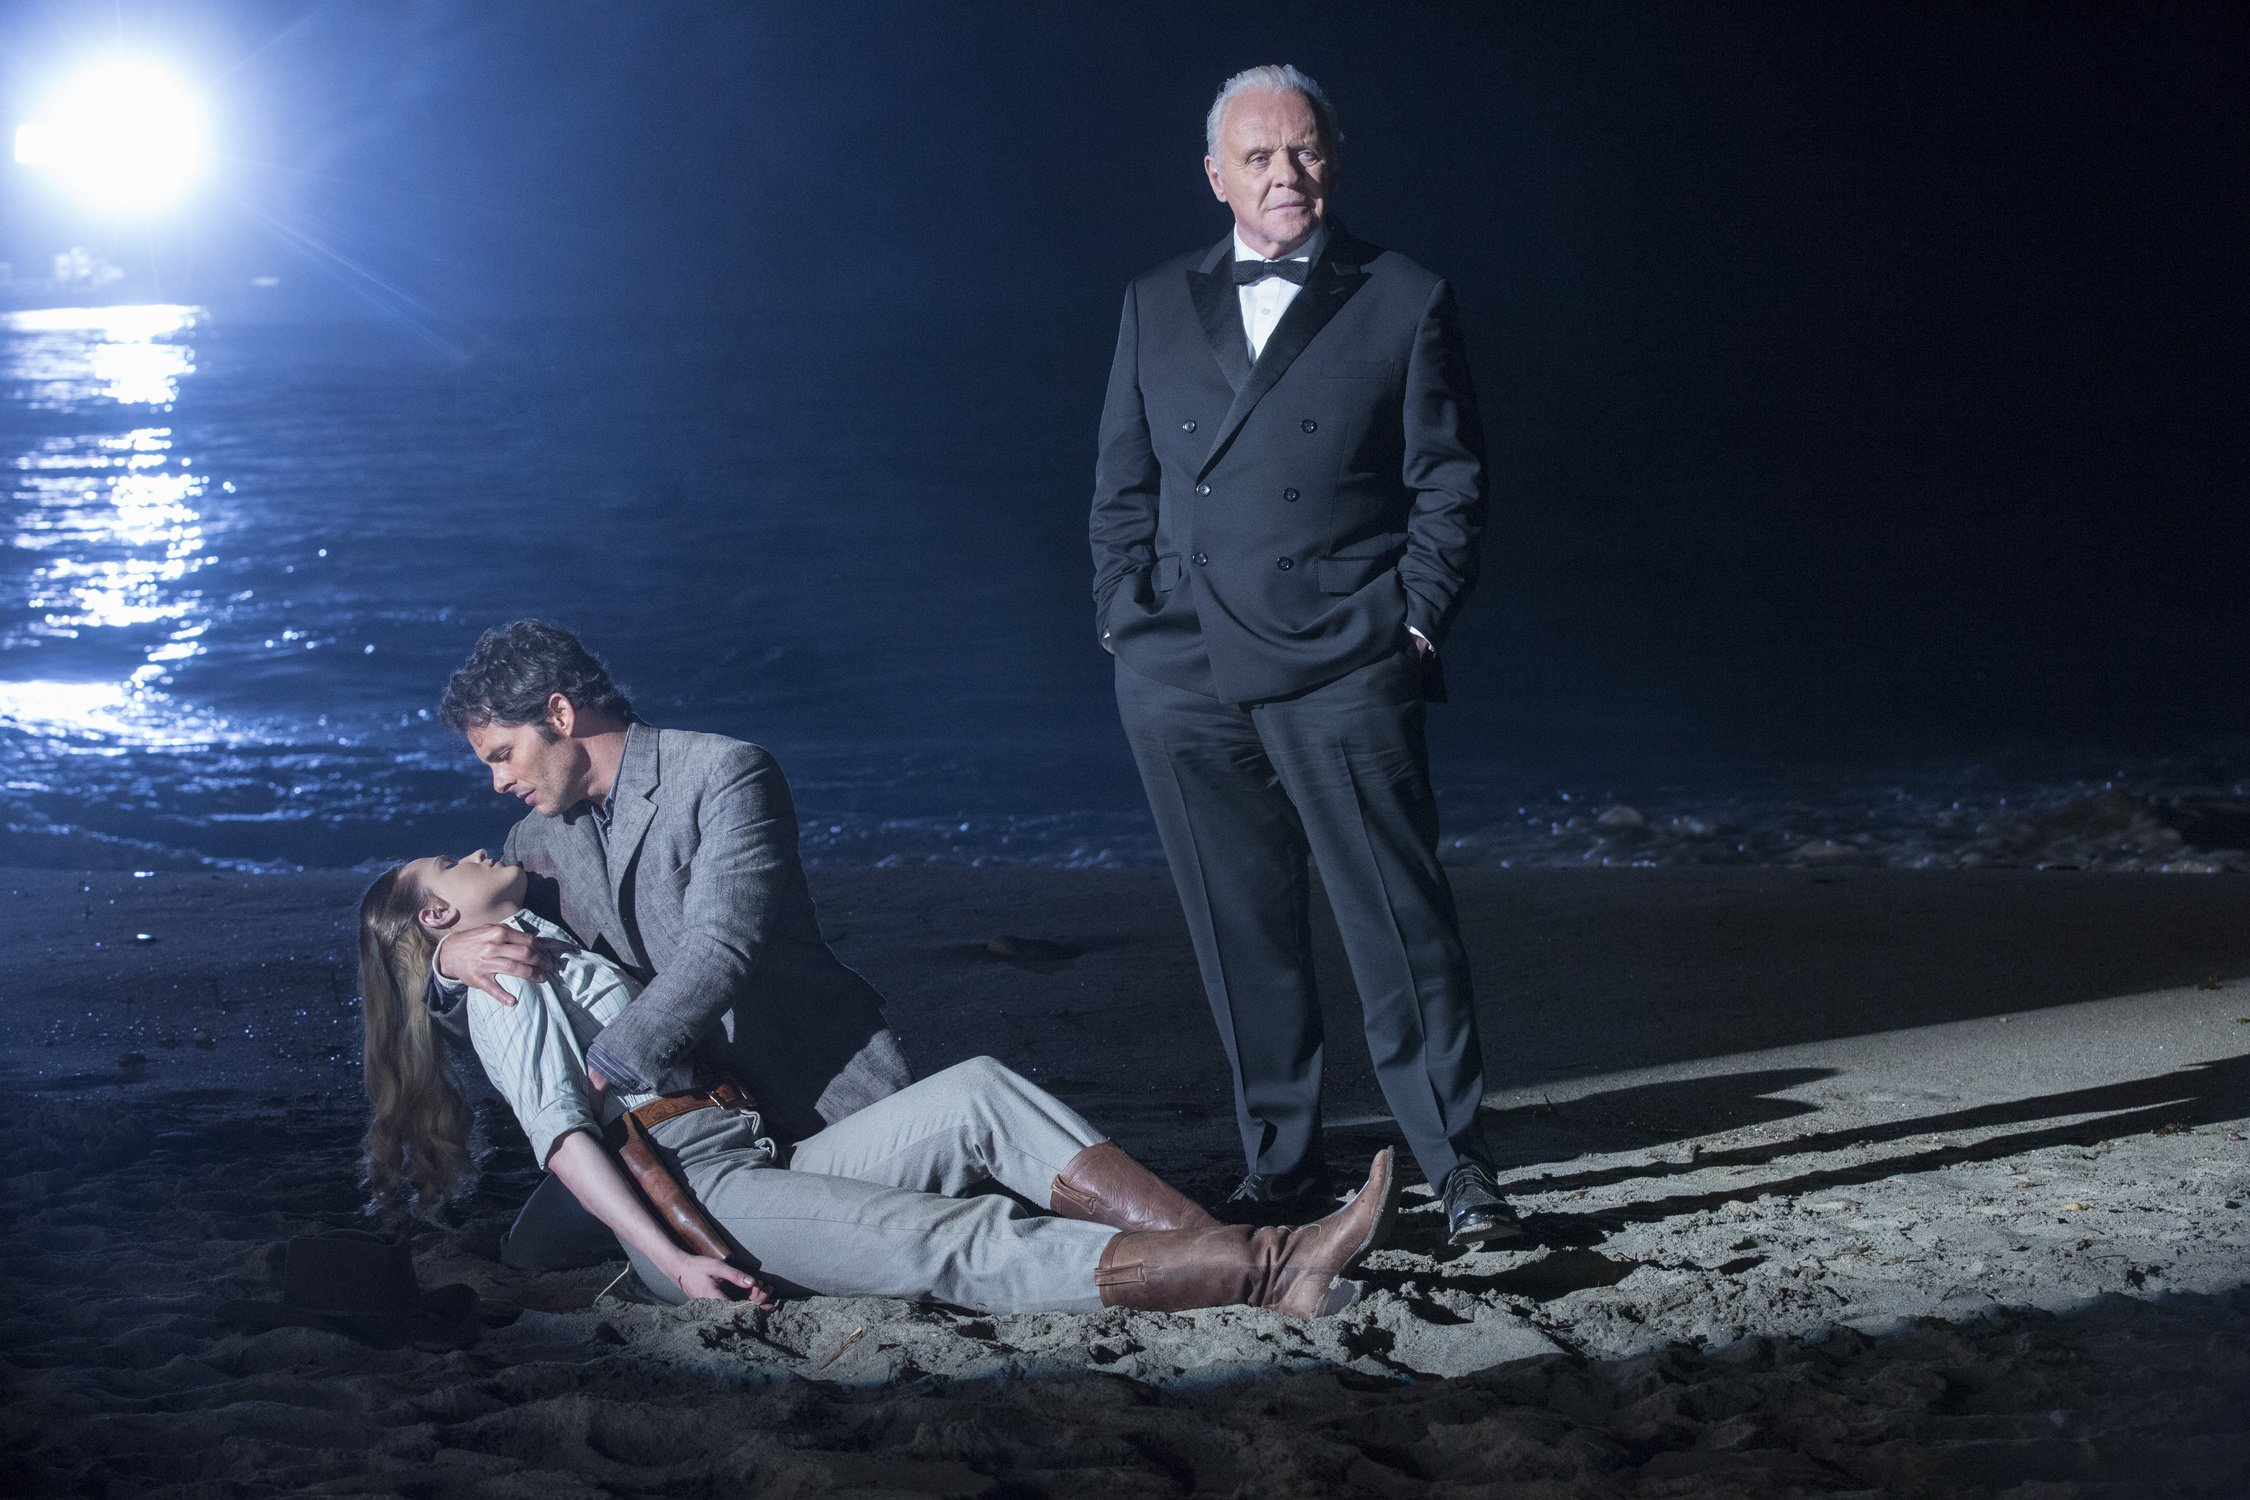 dolores and teddy with dr ford westworld finale.jpg